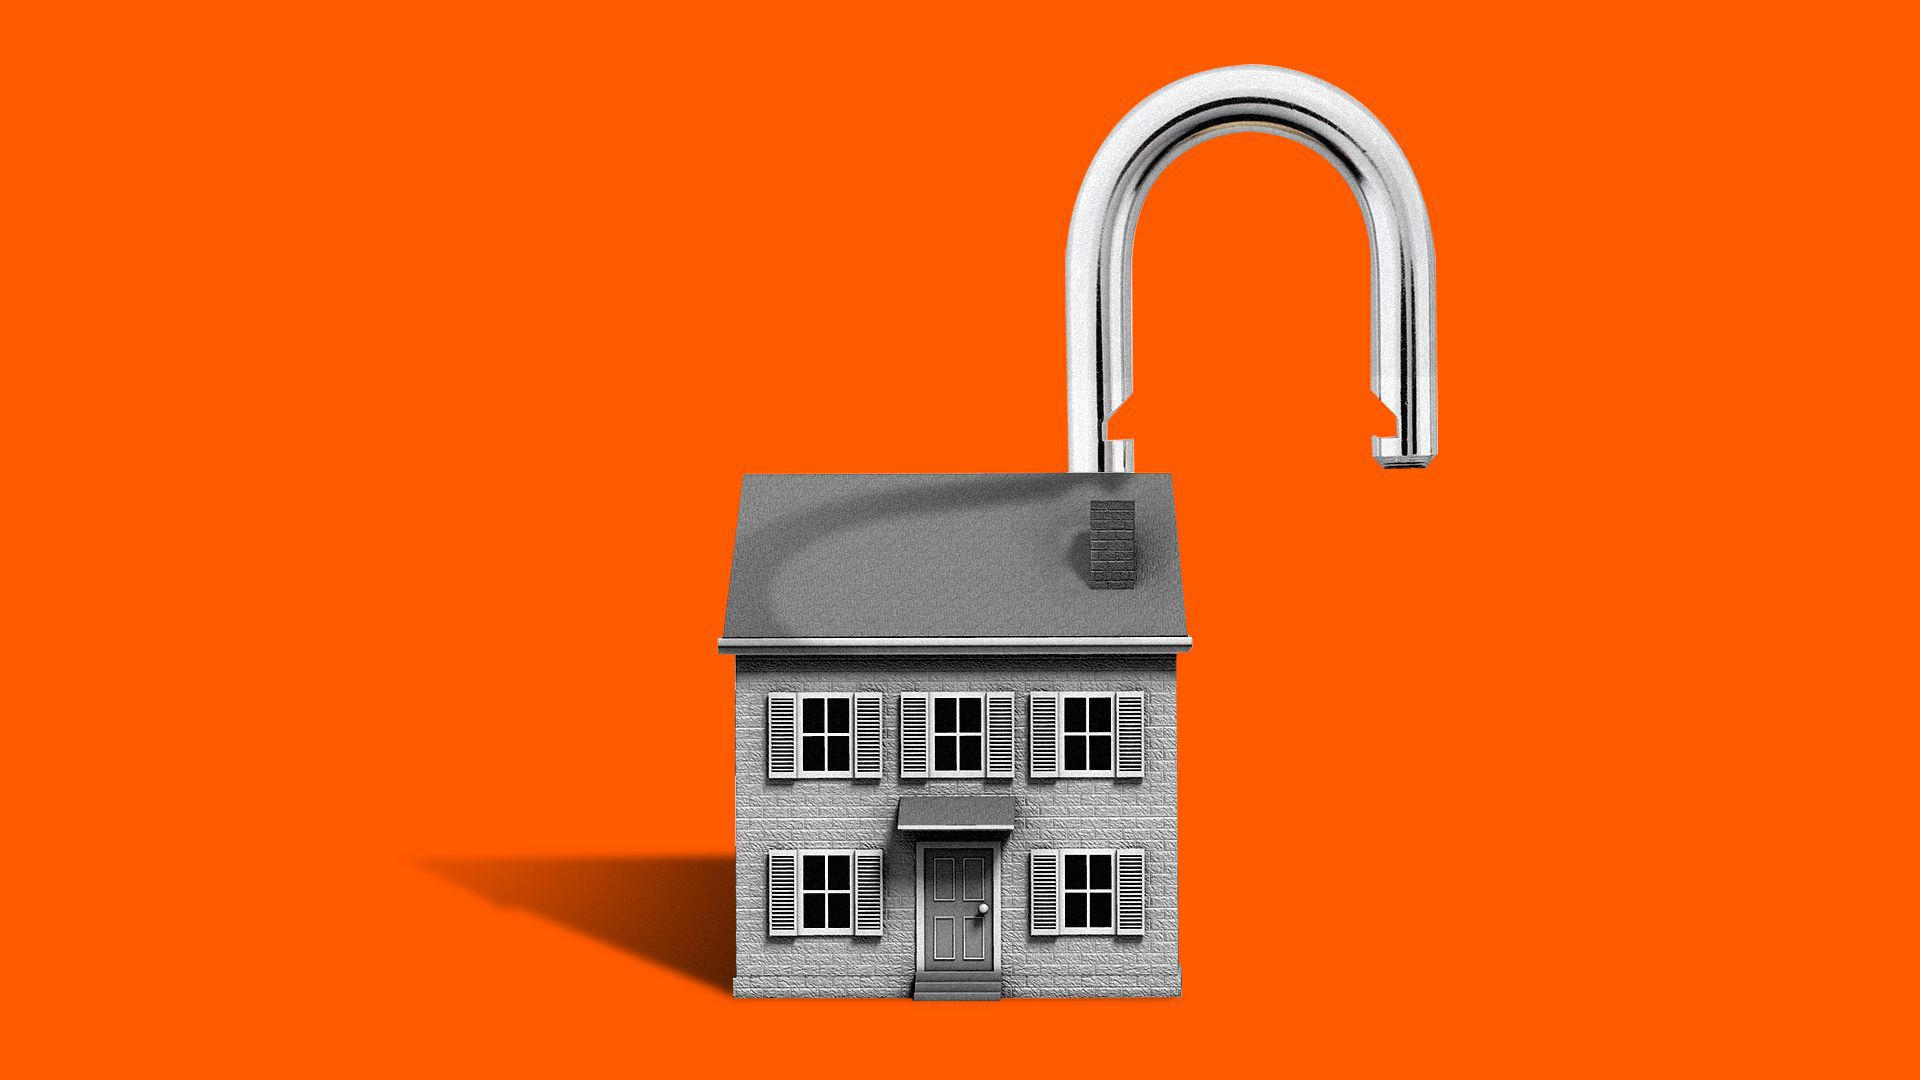 Illustration of a house with a padlock shackle on the roof in an open position.